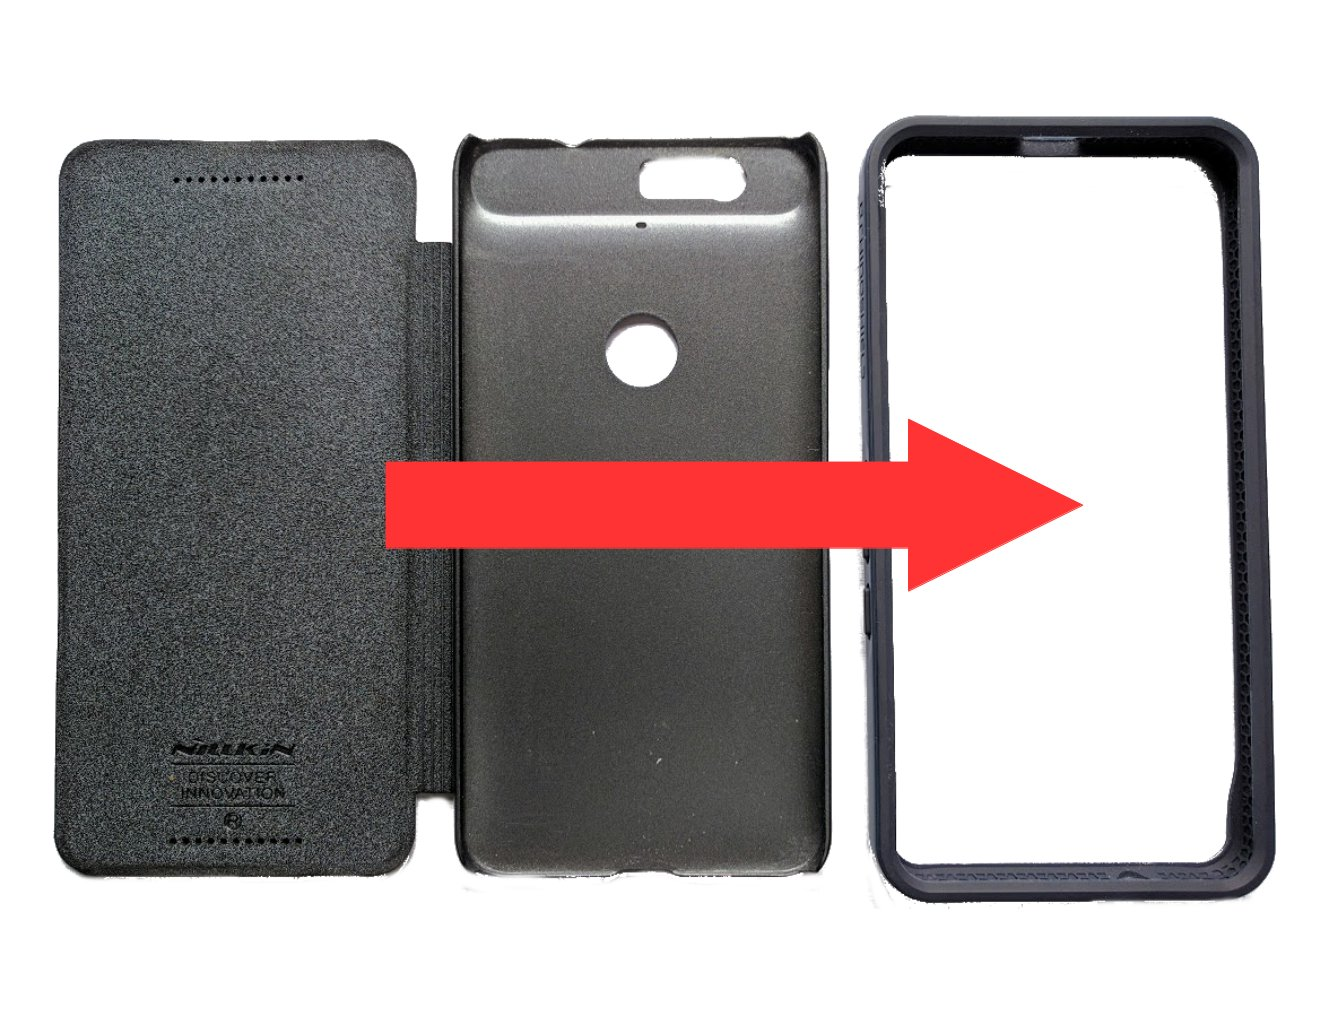 /pics/misc/nexus6p-case-switch.jpg